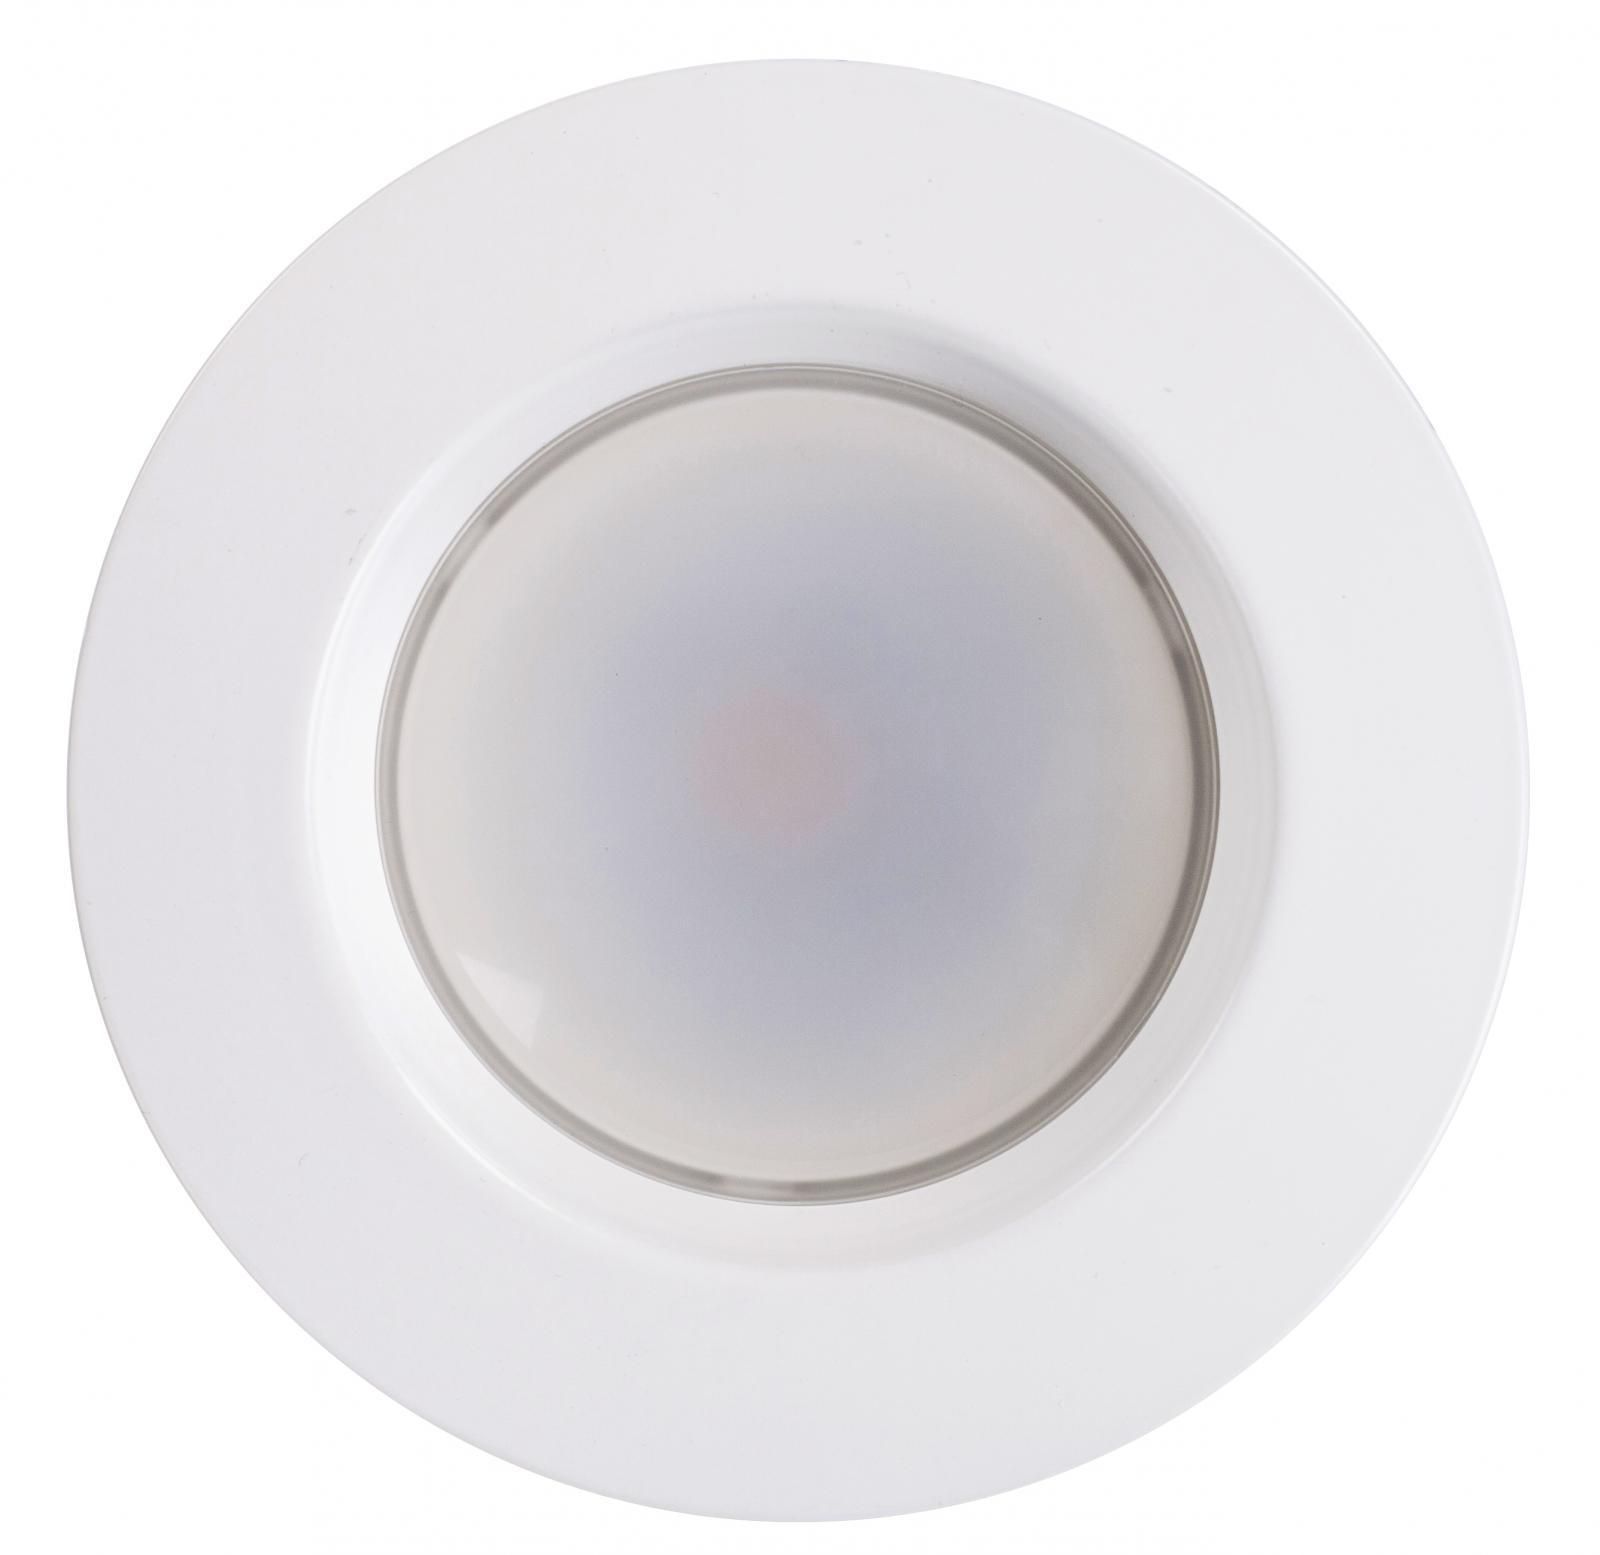 1 X DownLight 15W LED Recessed Trim Dimmable 5 6 Inch